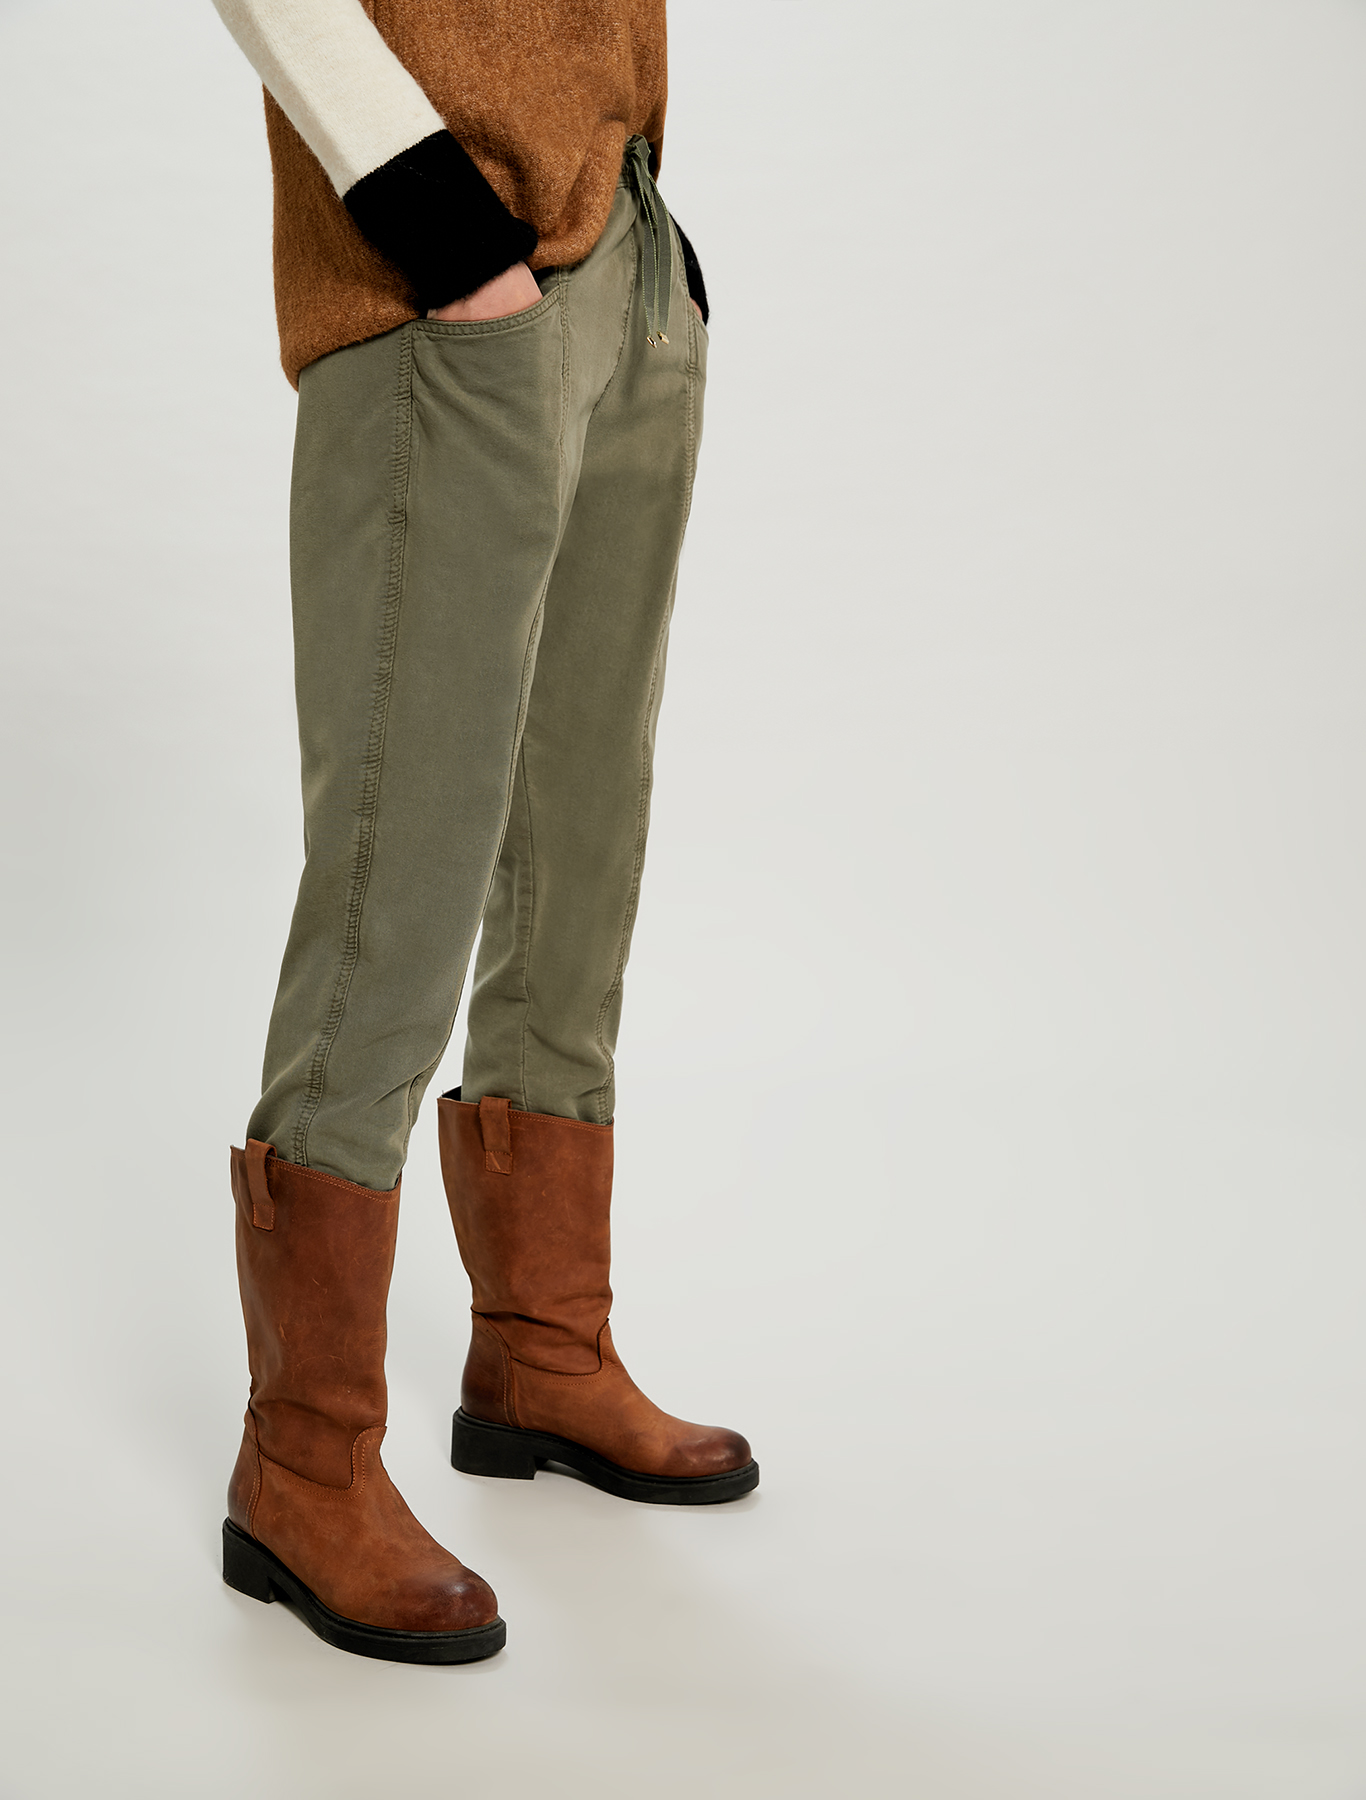 Flowing drawstring trousers - khaki green - pennyblack